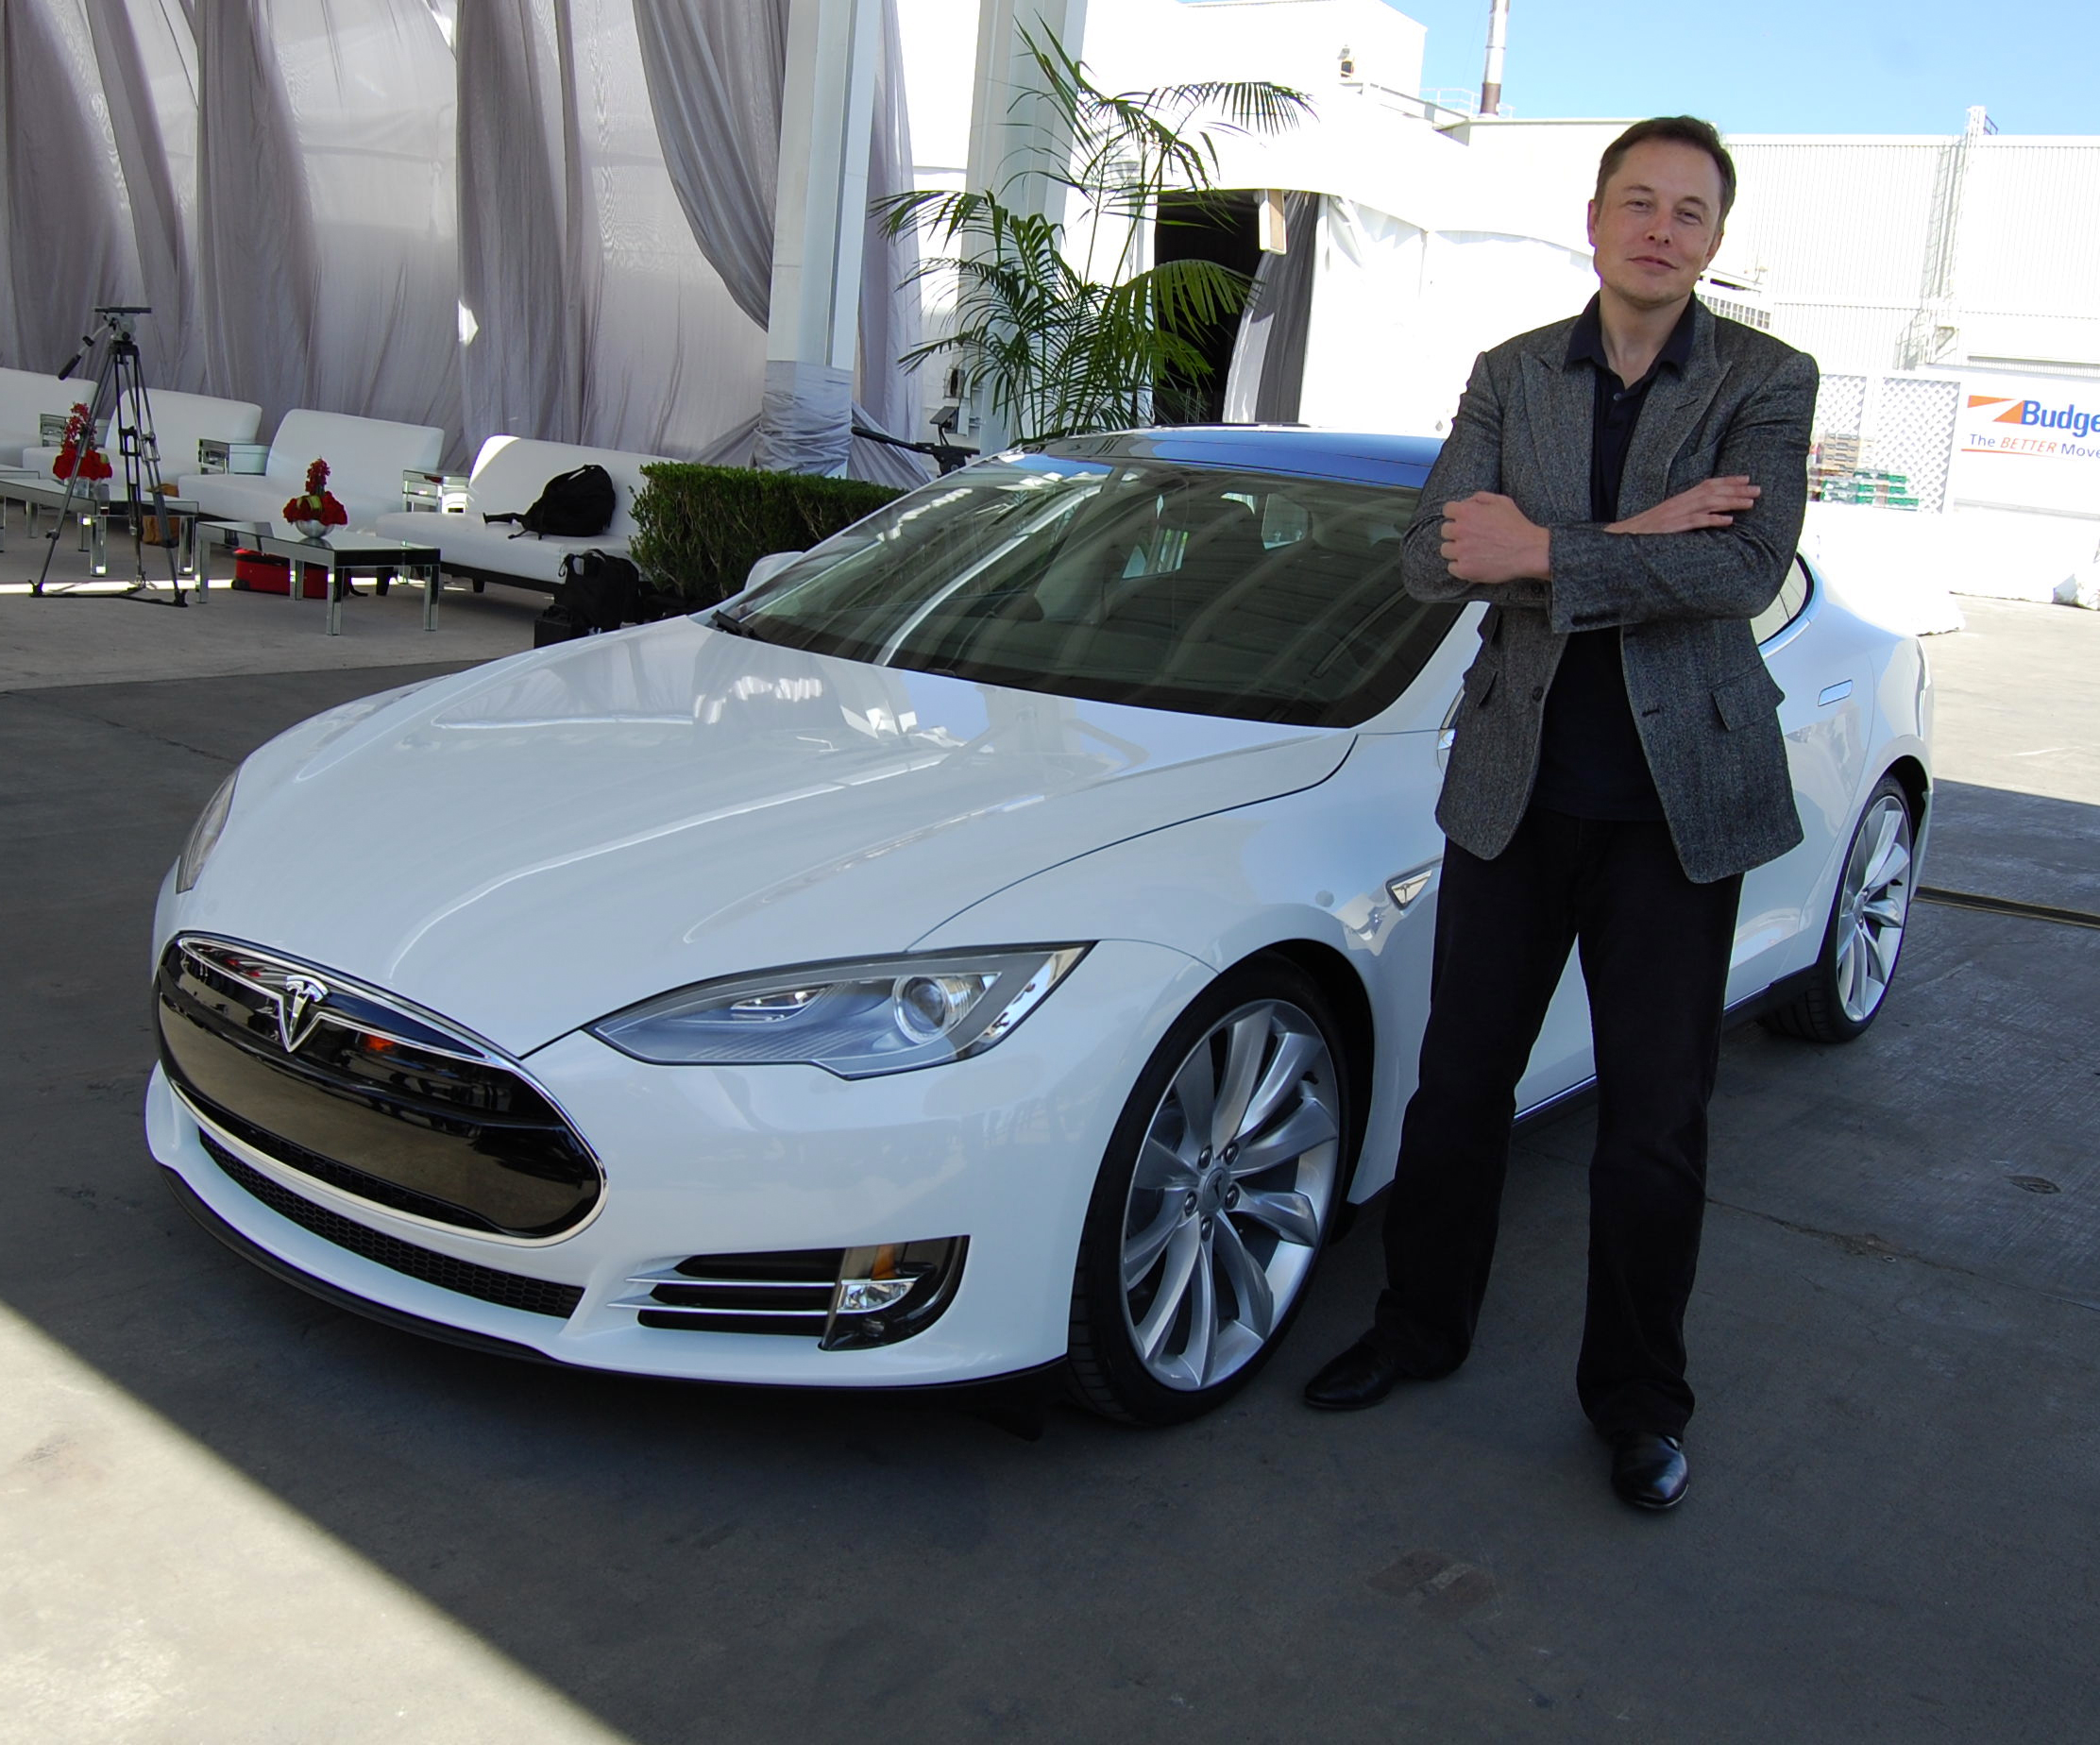 Musk Misses Another Deadline. Only by Two Years, Though. Maybe Three ...